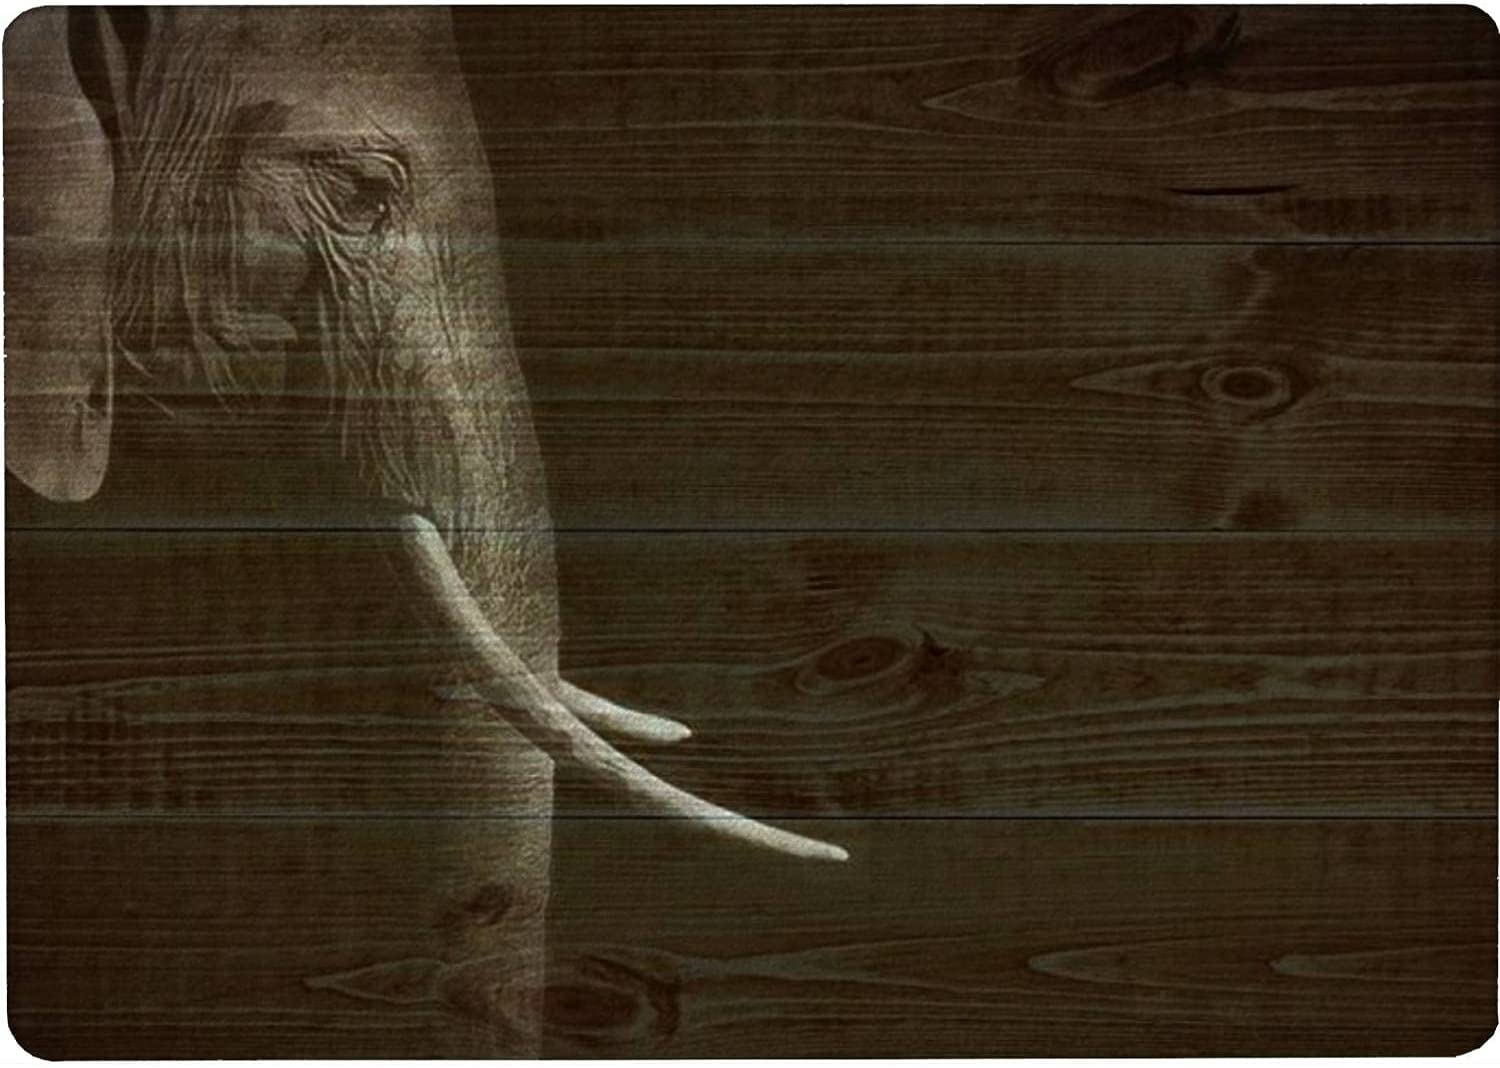 OFFicial site Tempered Glass Cutting Board African elephant specialty shop black white and in